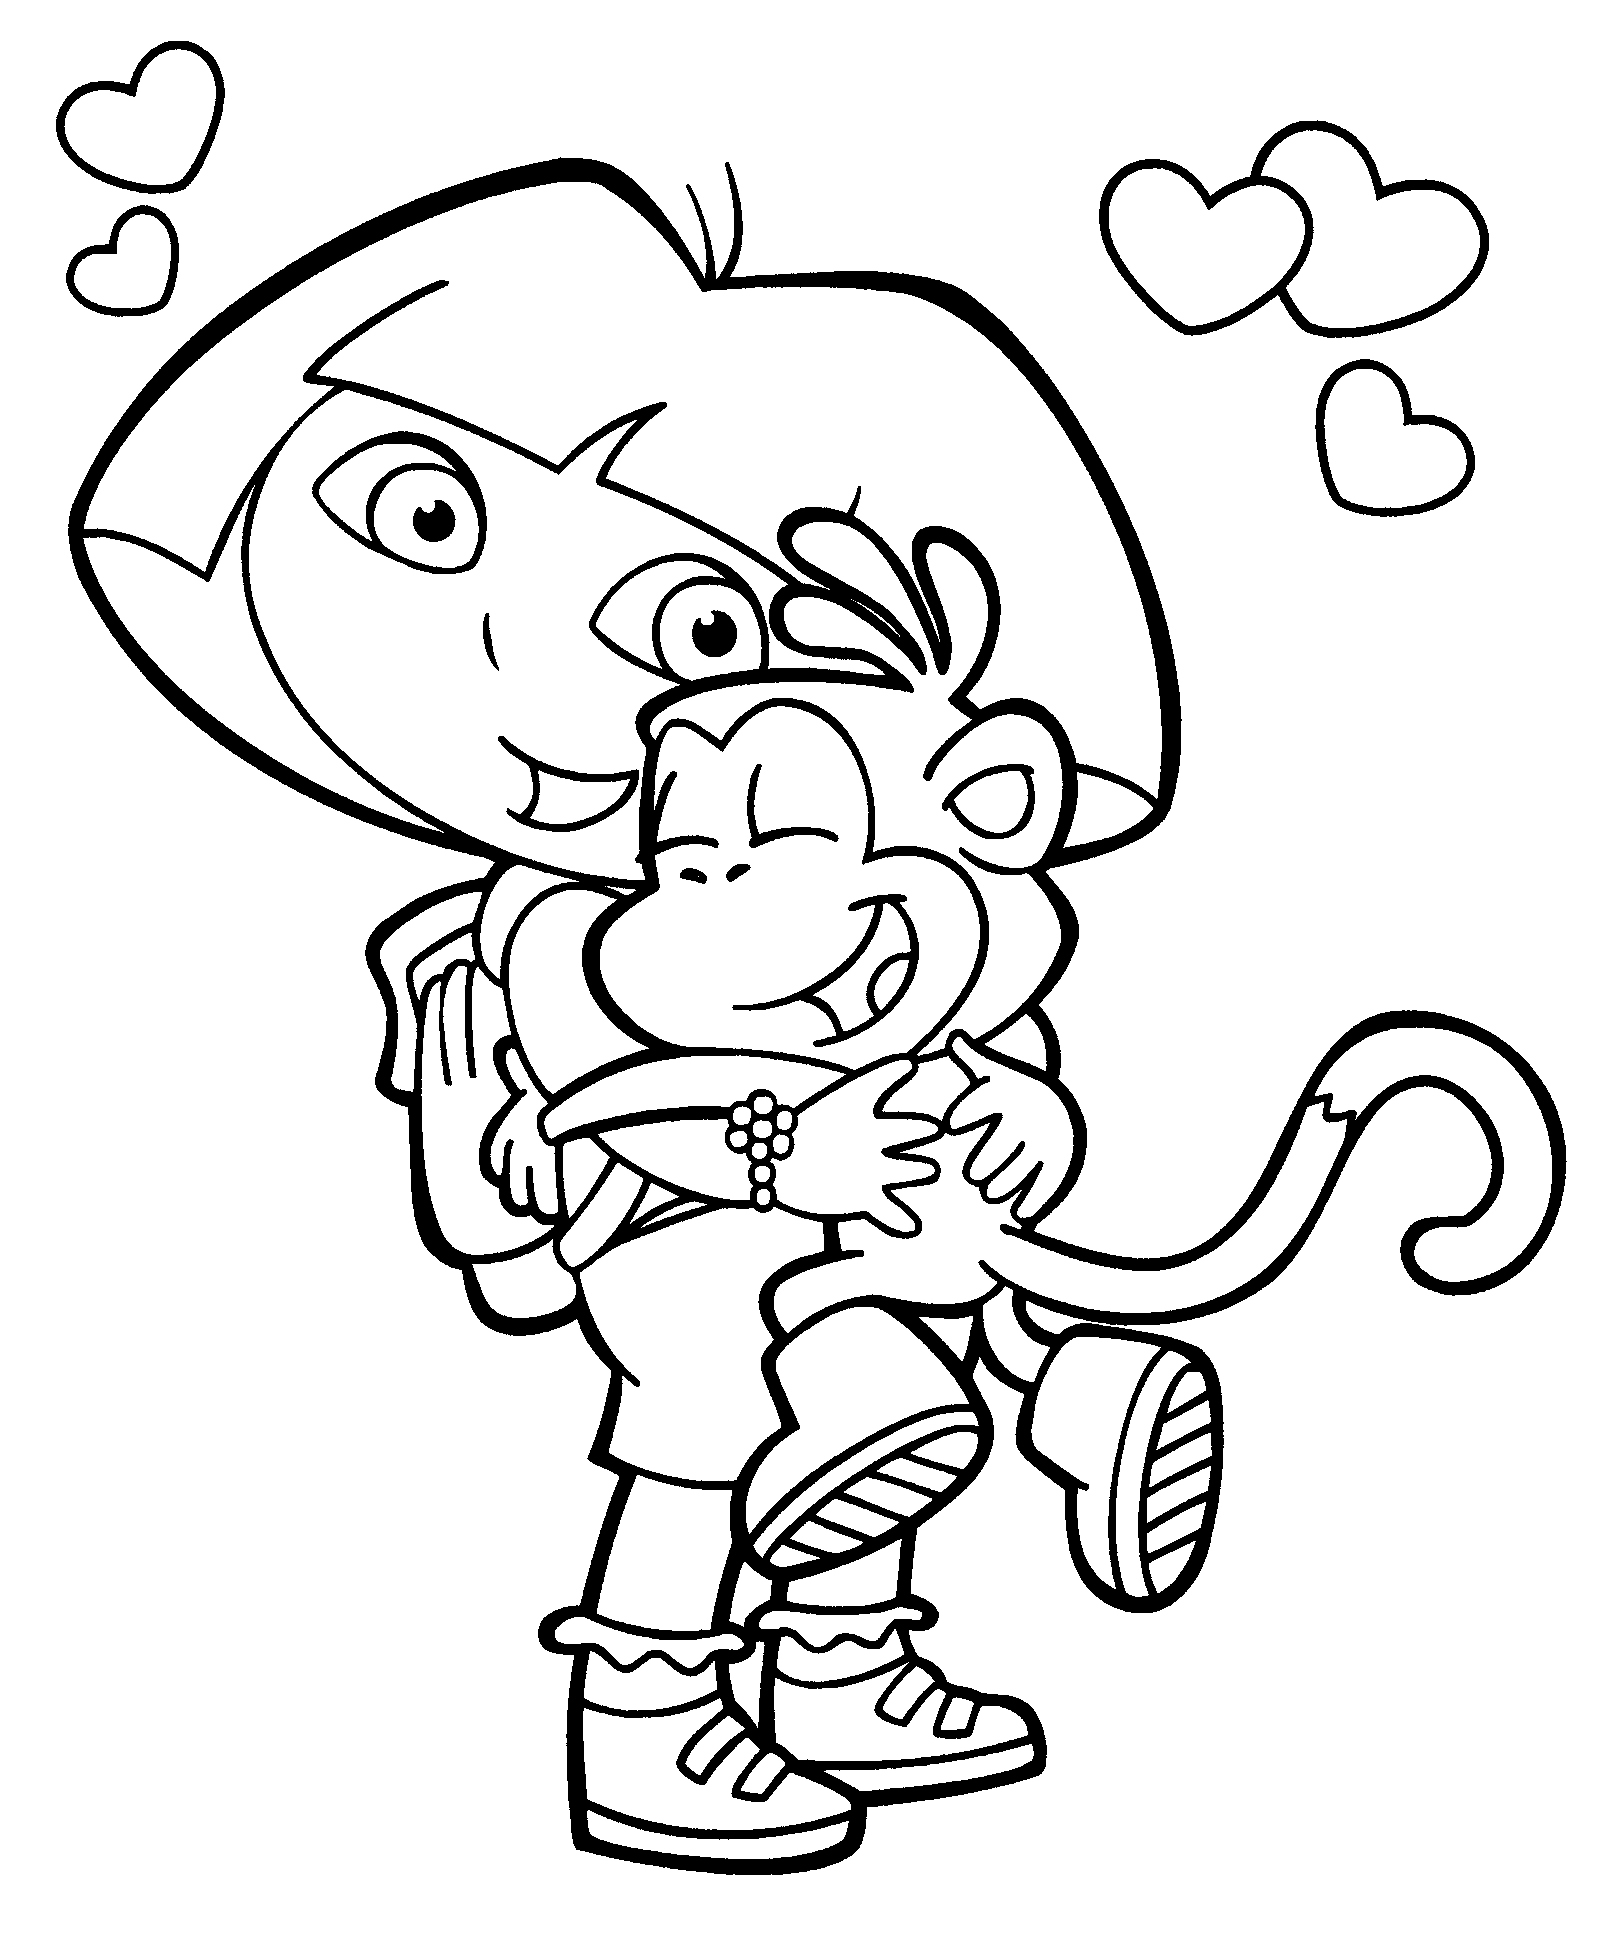 coloring pages at nick jr - photo#16